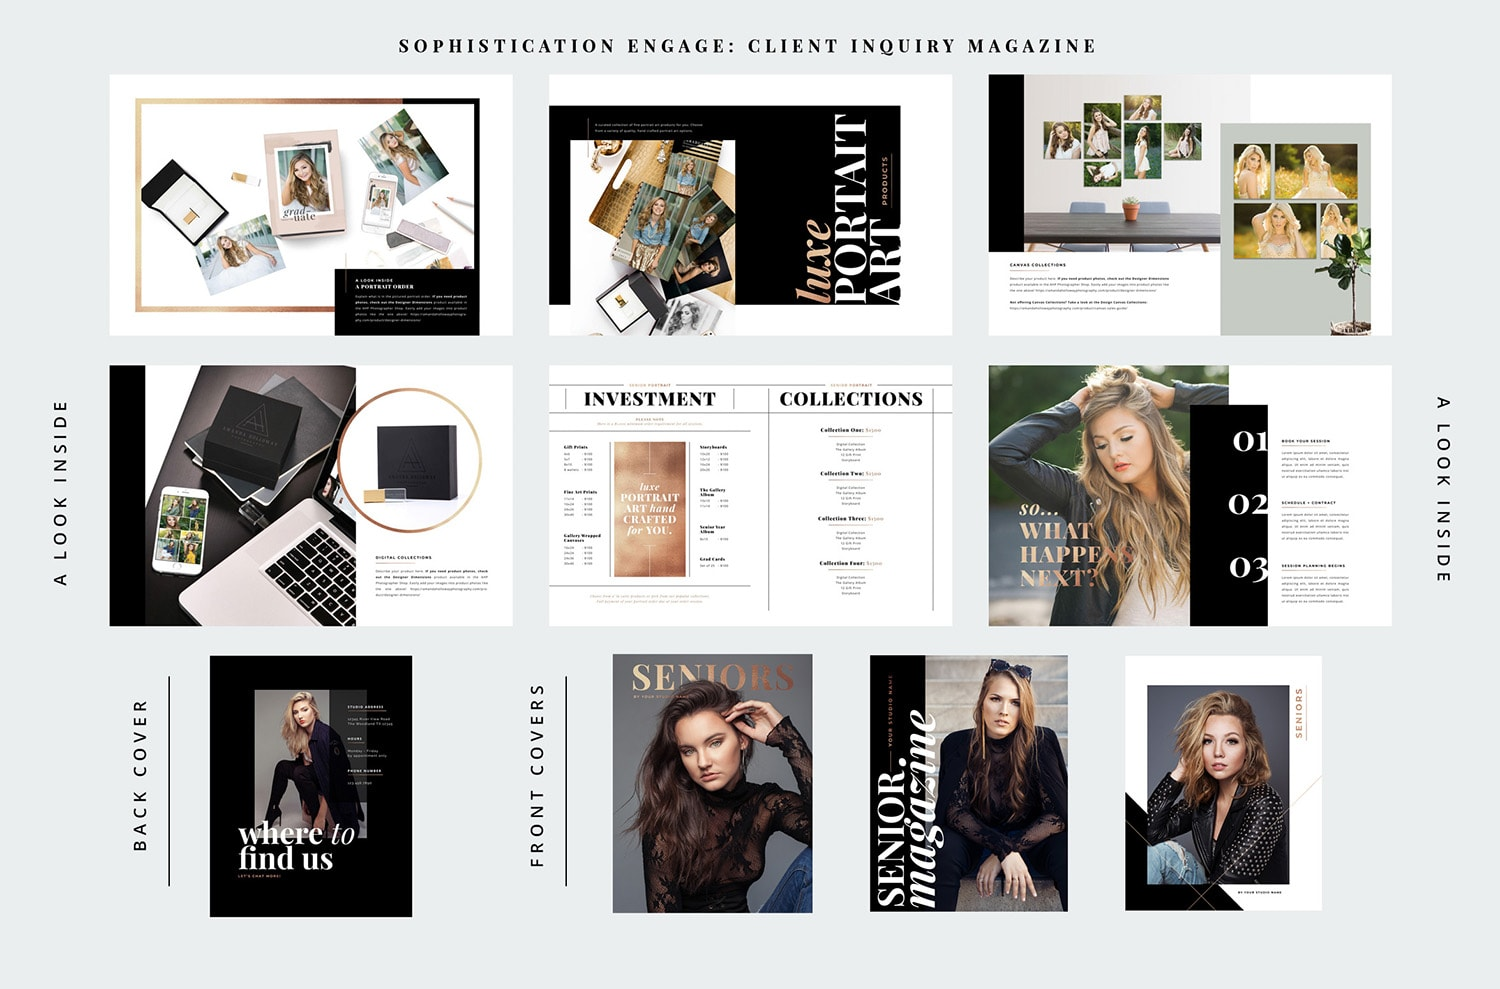 Sophistication Engage - Guide to the Client Inquiry Magazine